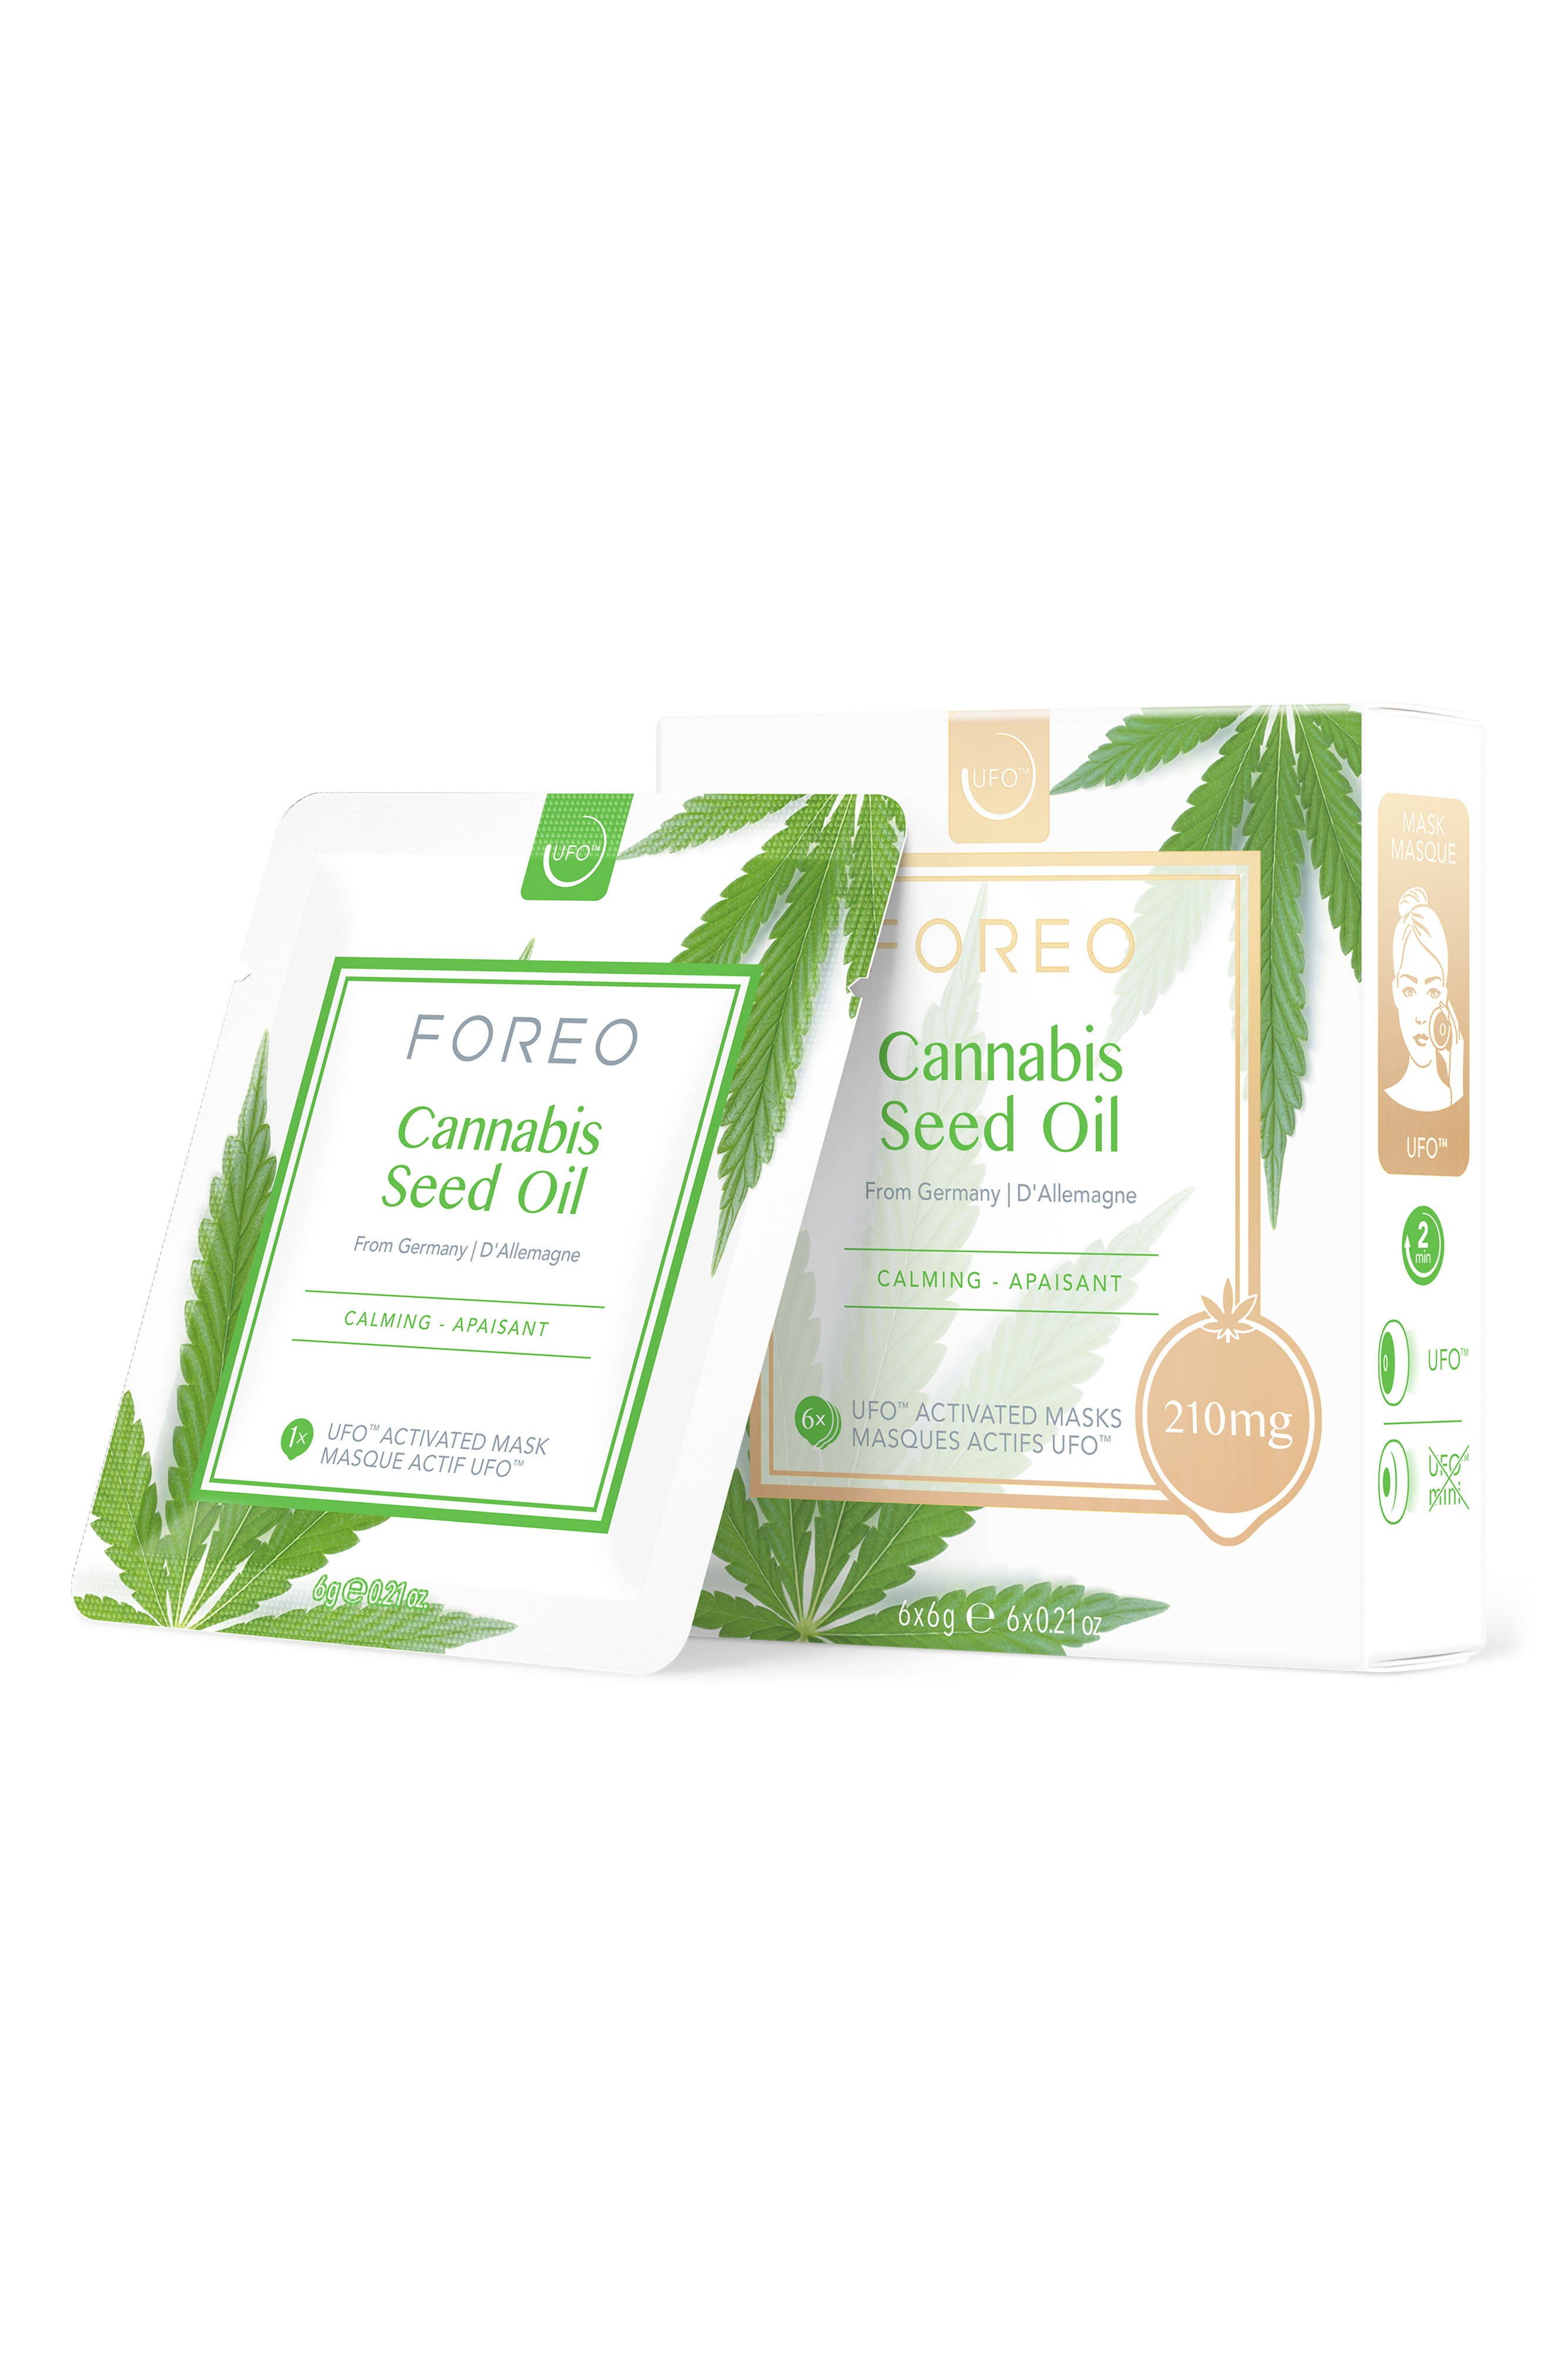 Cannabis Seed Oil Ufo(TM) Activated Smart Mask